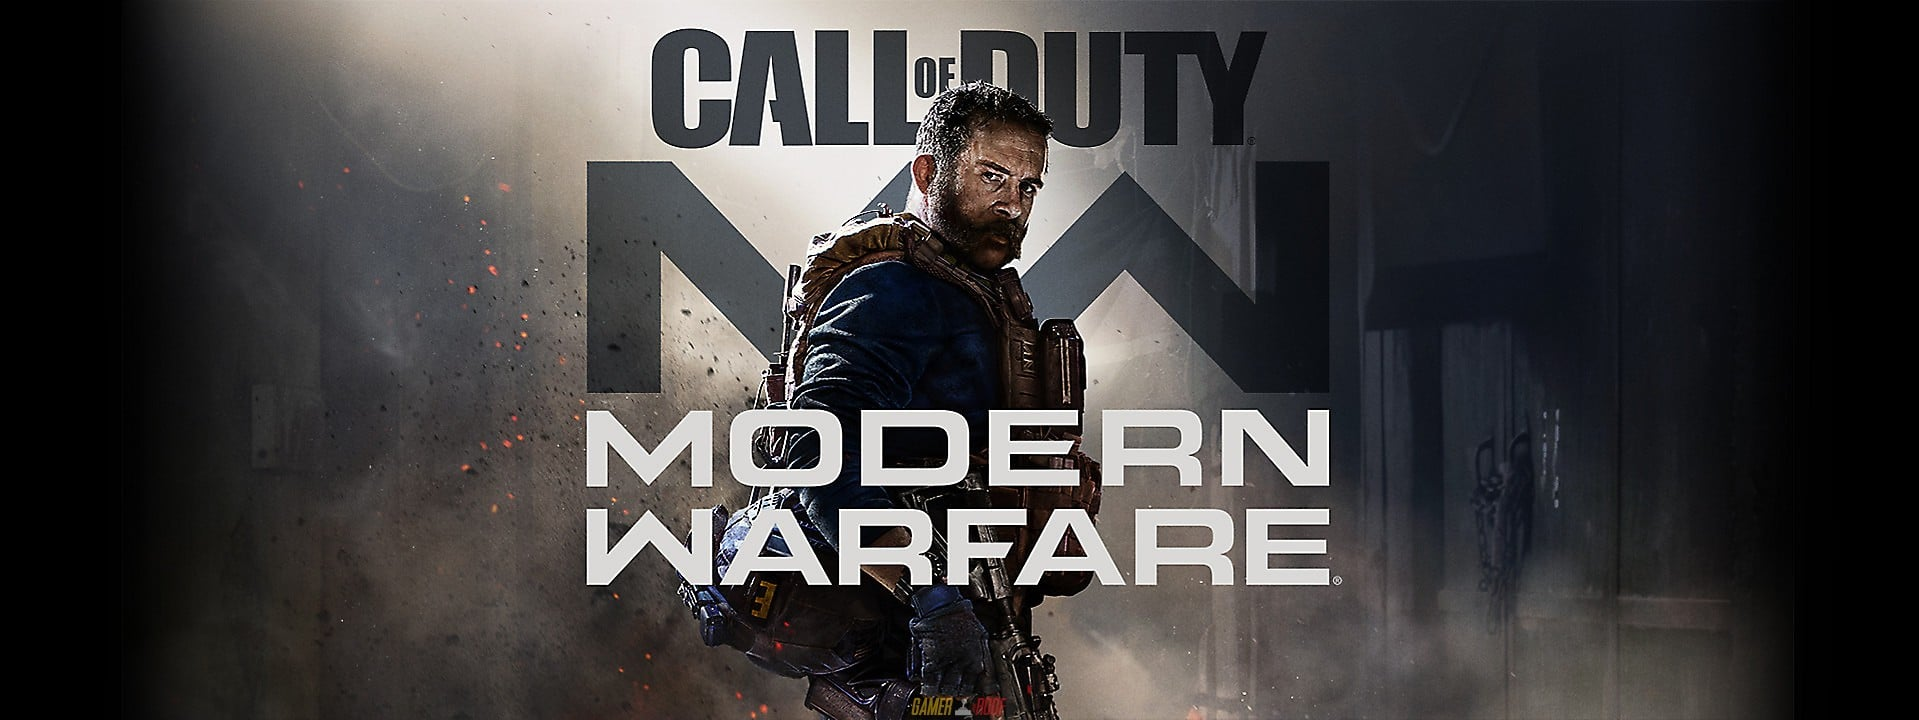 Call of Duty Modern Warfare PC Full Version Free Download Best New Game